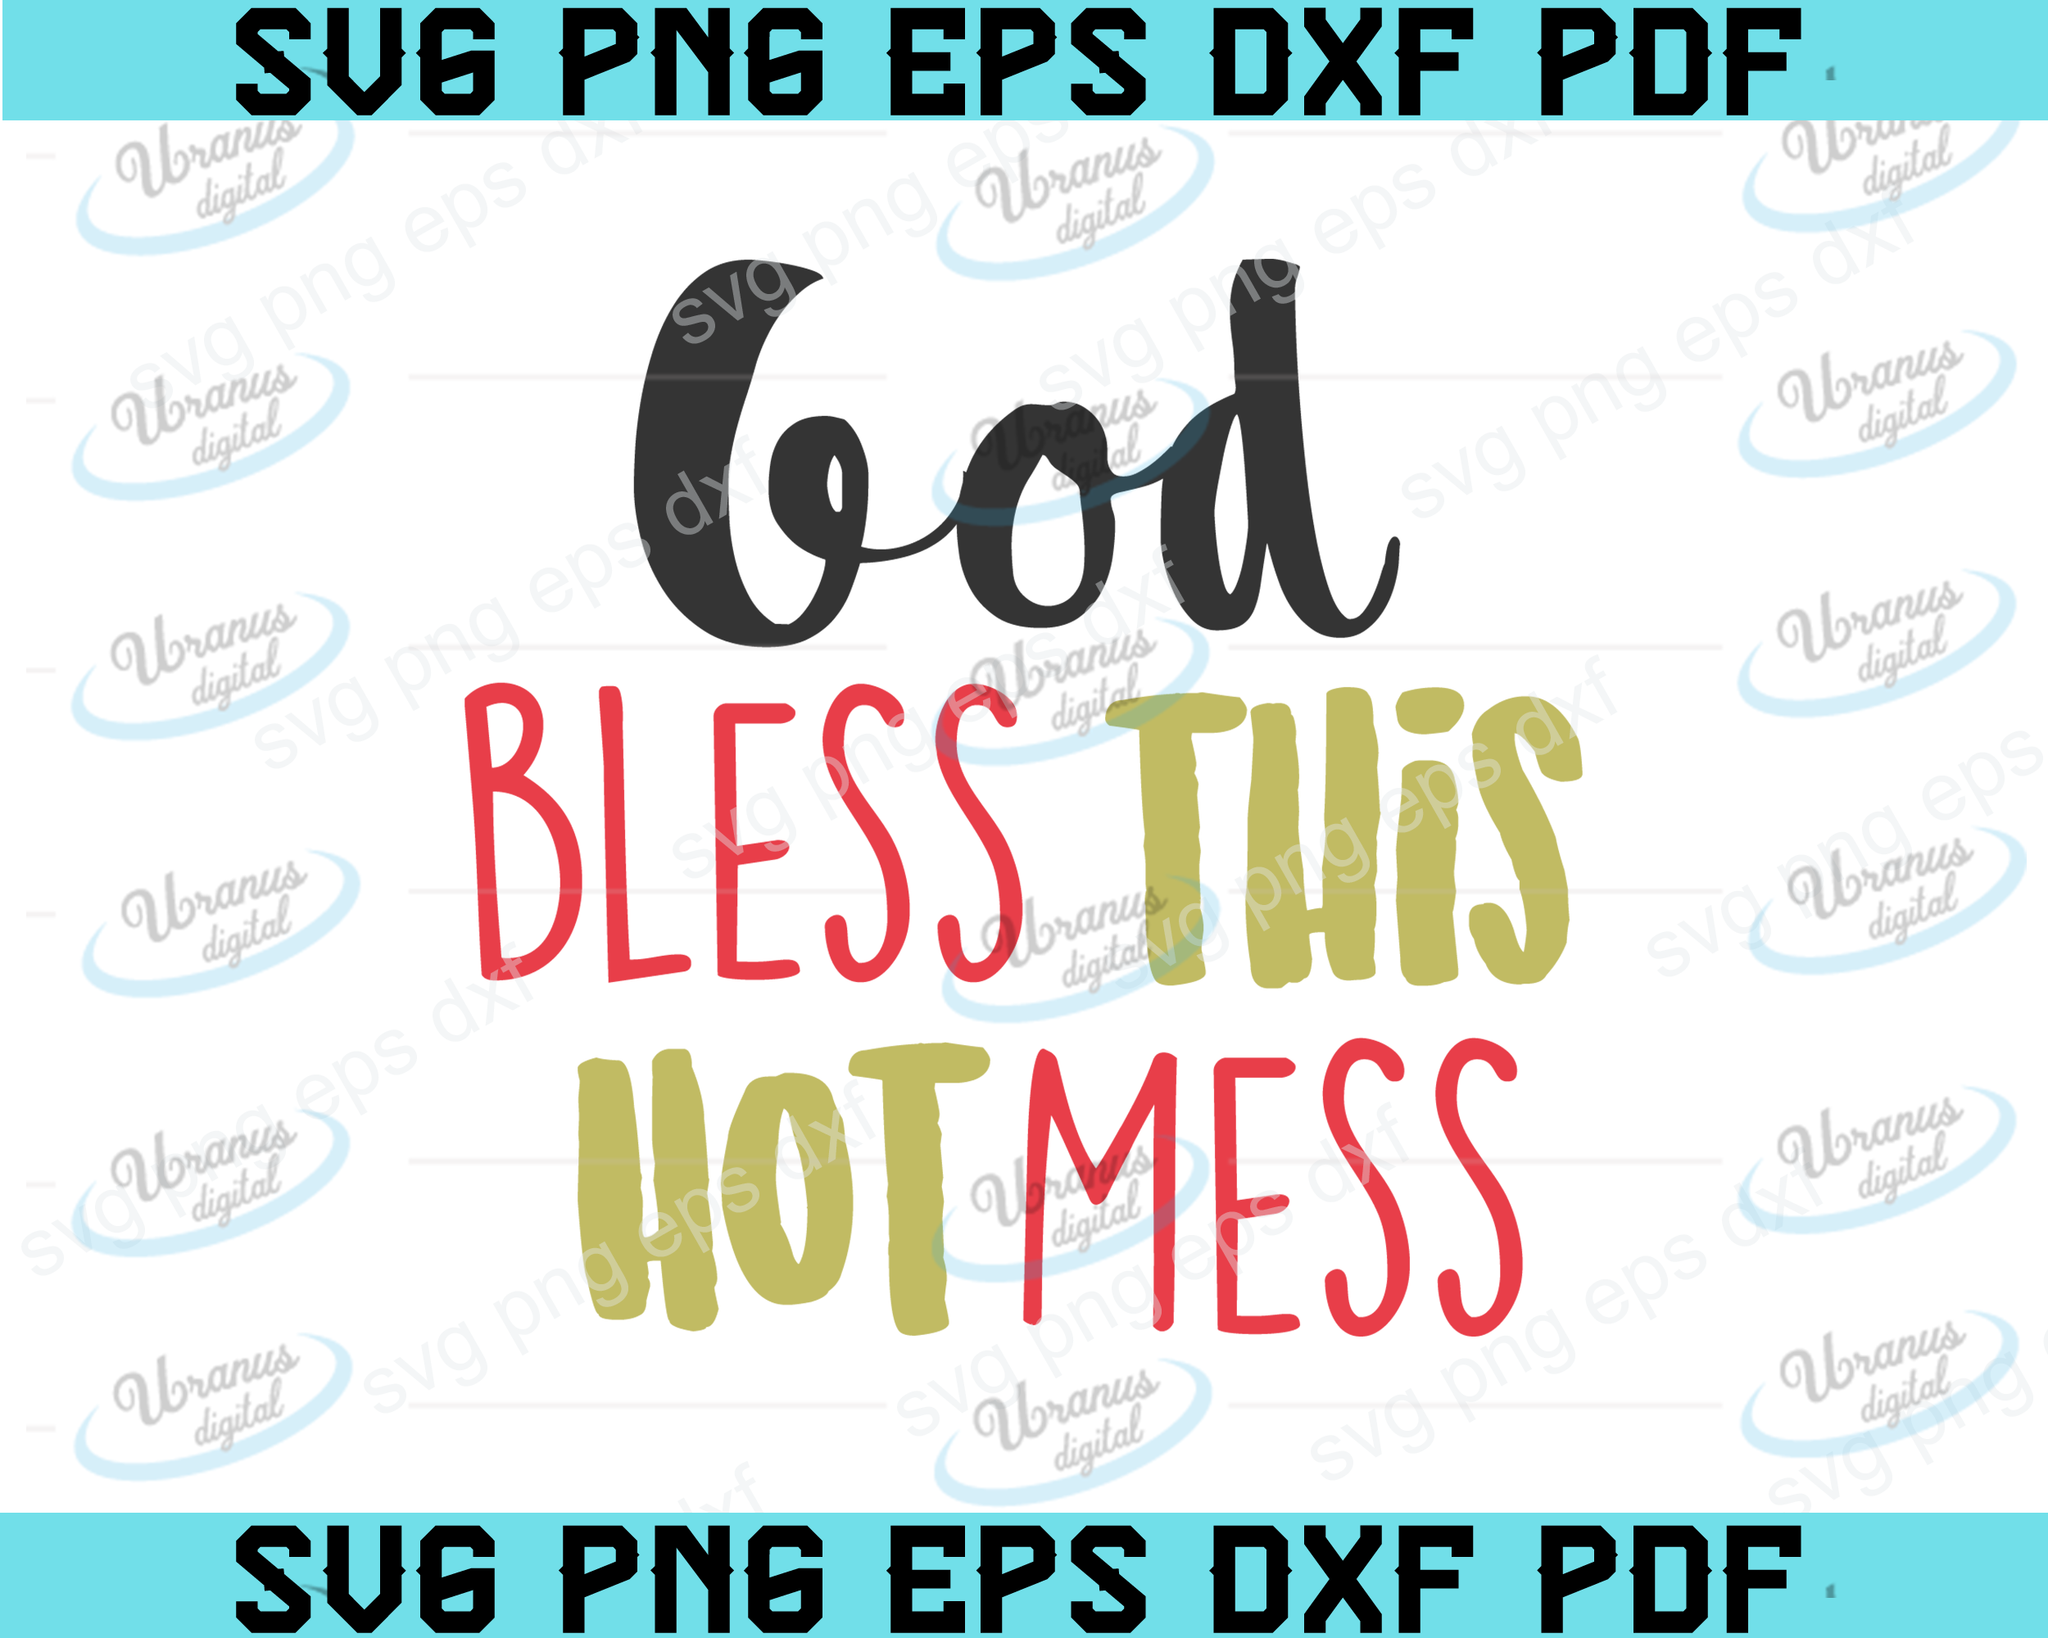 God bless this hot mess - funny svg - vector - digital clipart, t-shirt design, instant download